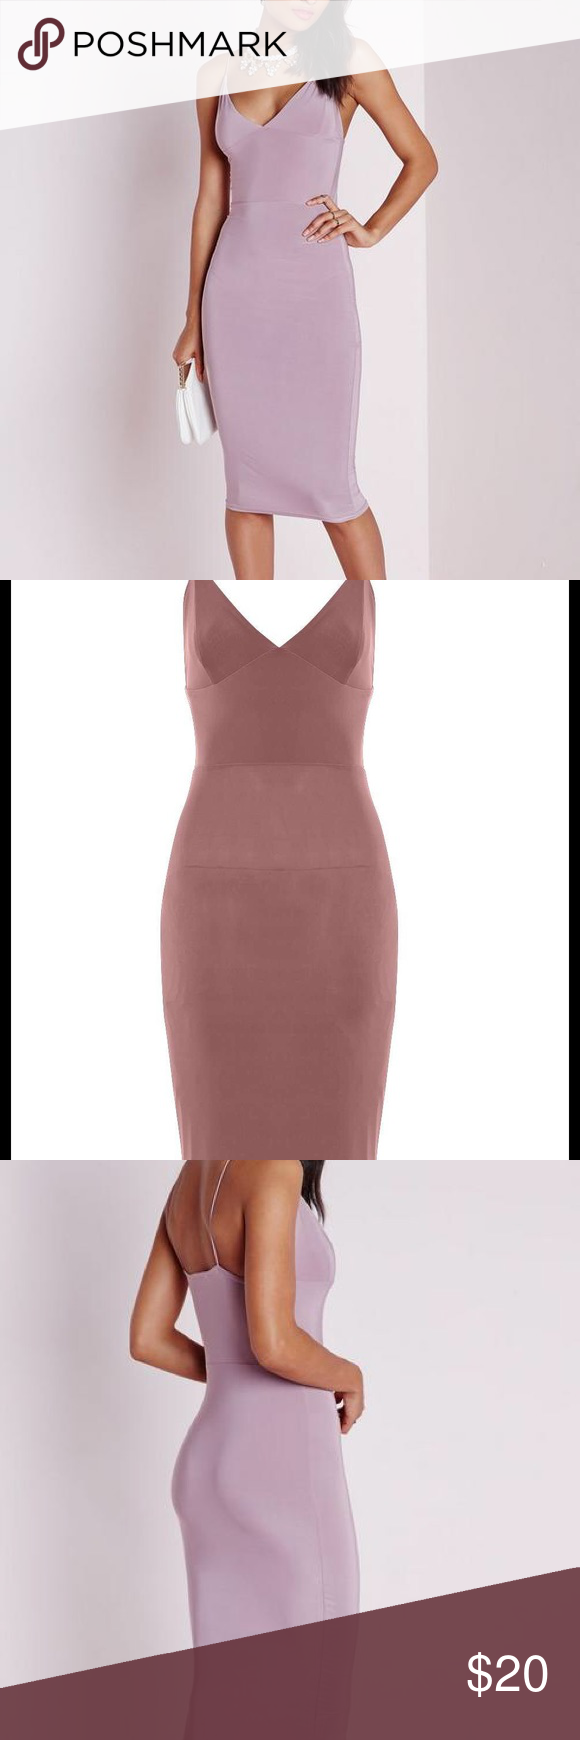 Misguided slinky midi dress mauve Misguided slinky midi dress mauve. Only worn once Missguided Dresses Midi